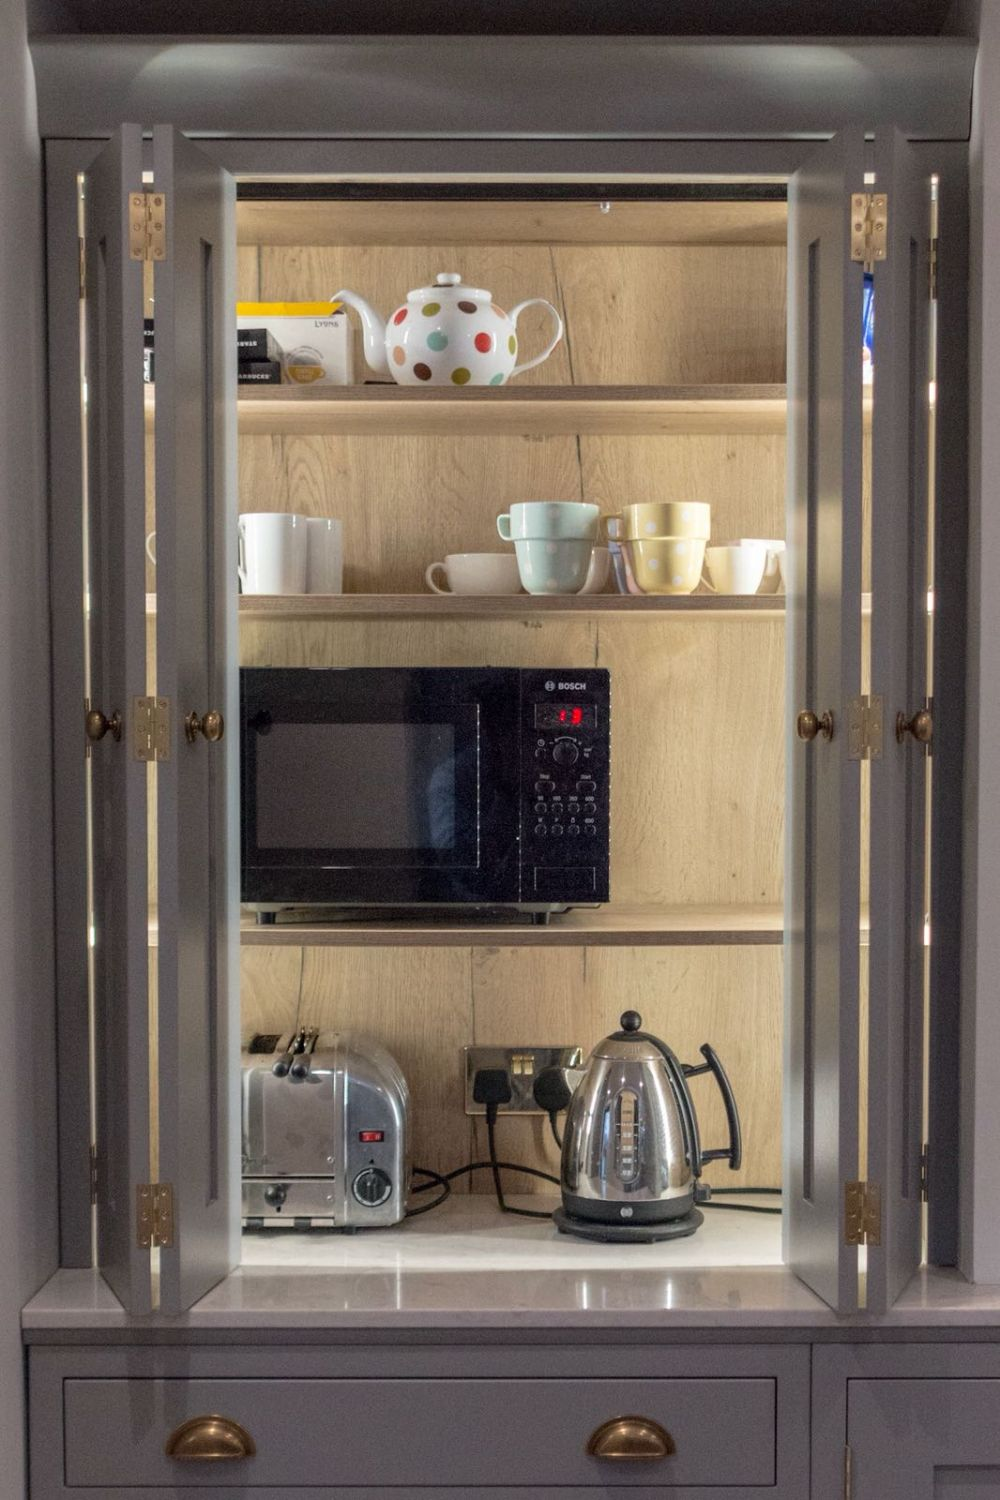 Bi Fold Four Door Inframe Pantry with sensor Lighting